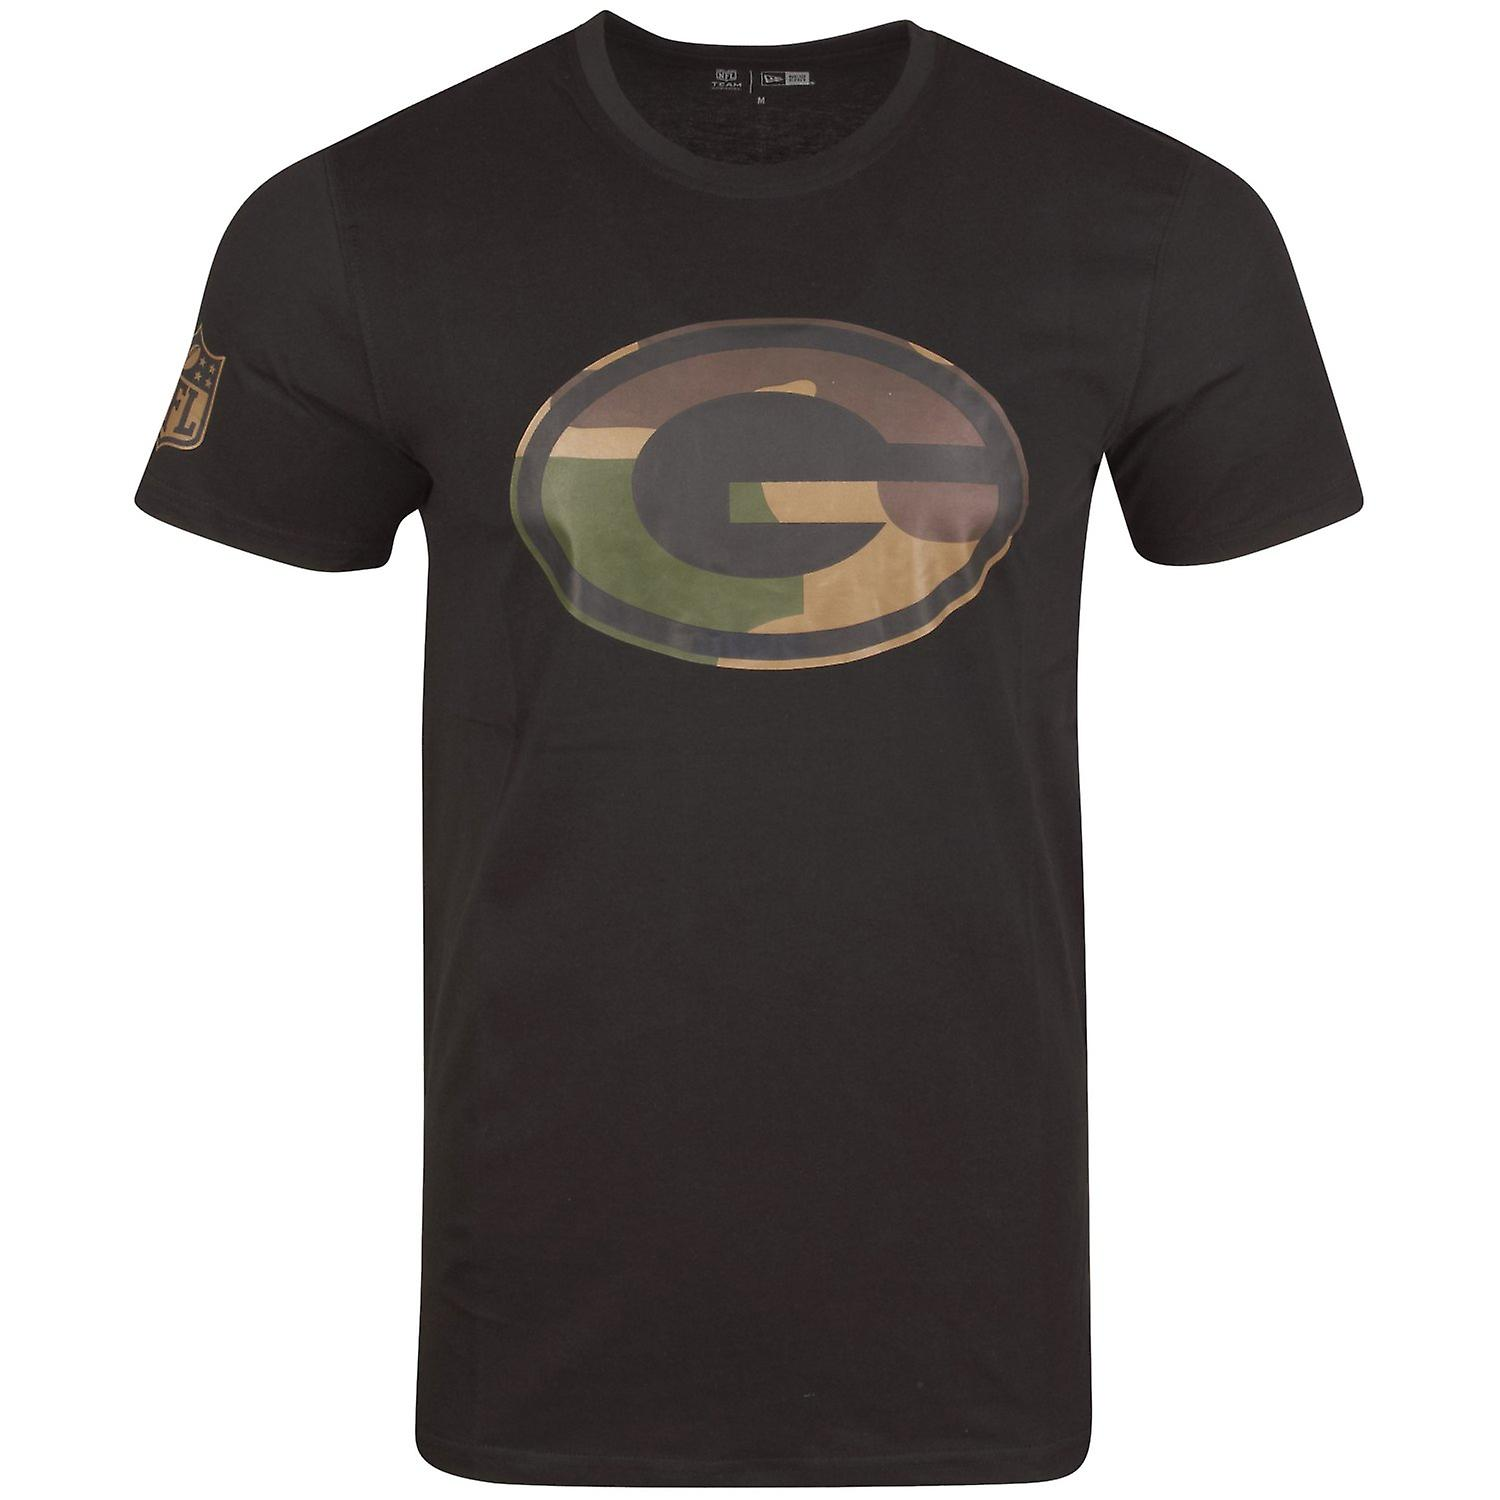 NFL Green Bay Packers schwarz New Era Camo Shirt